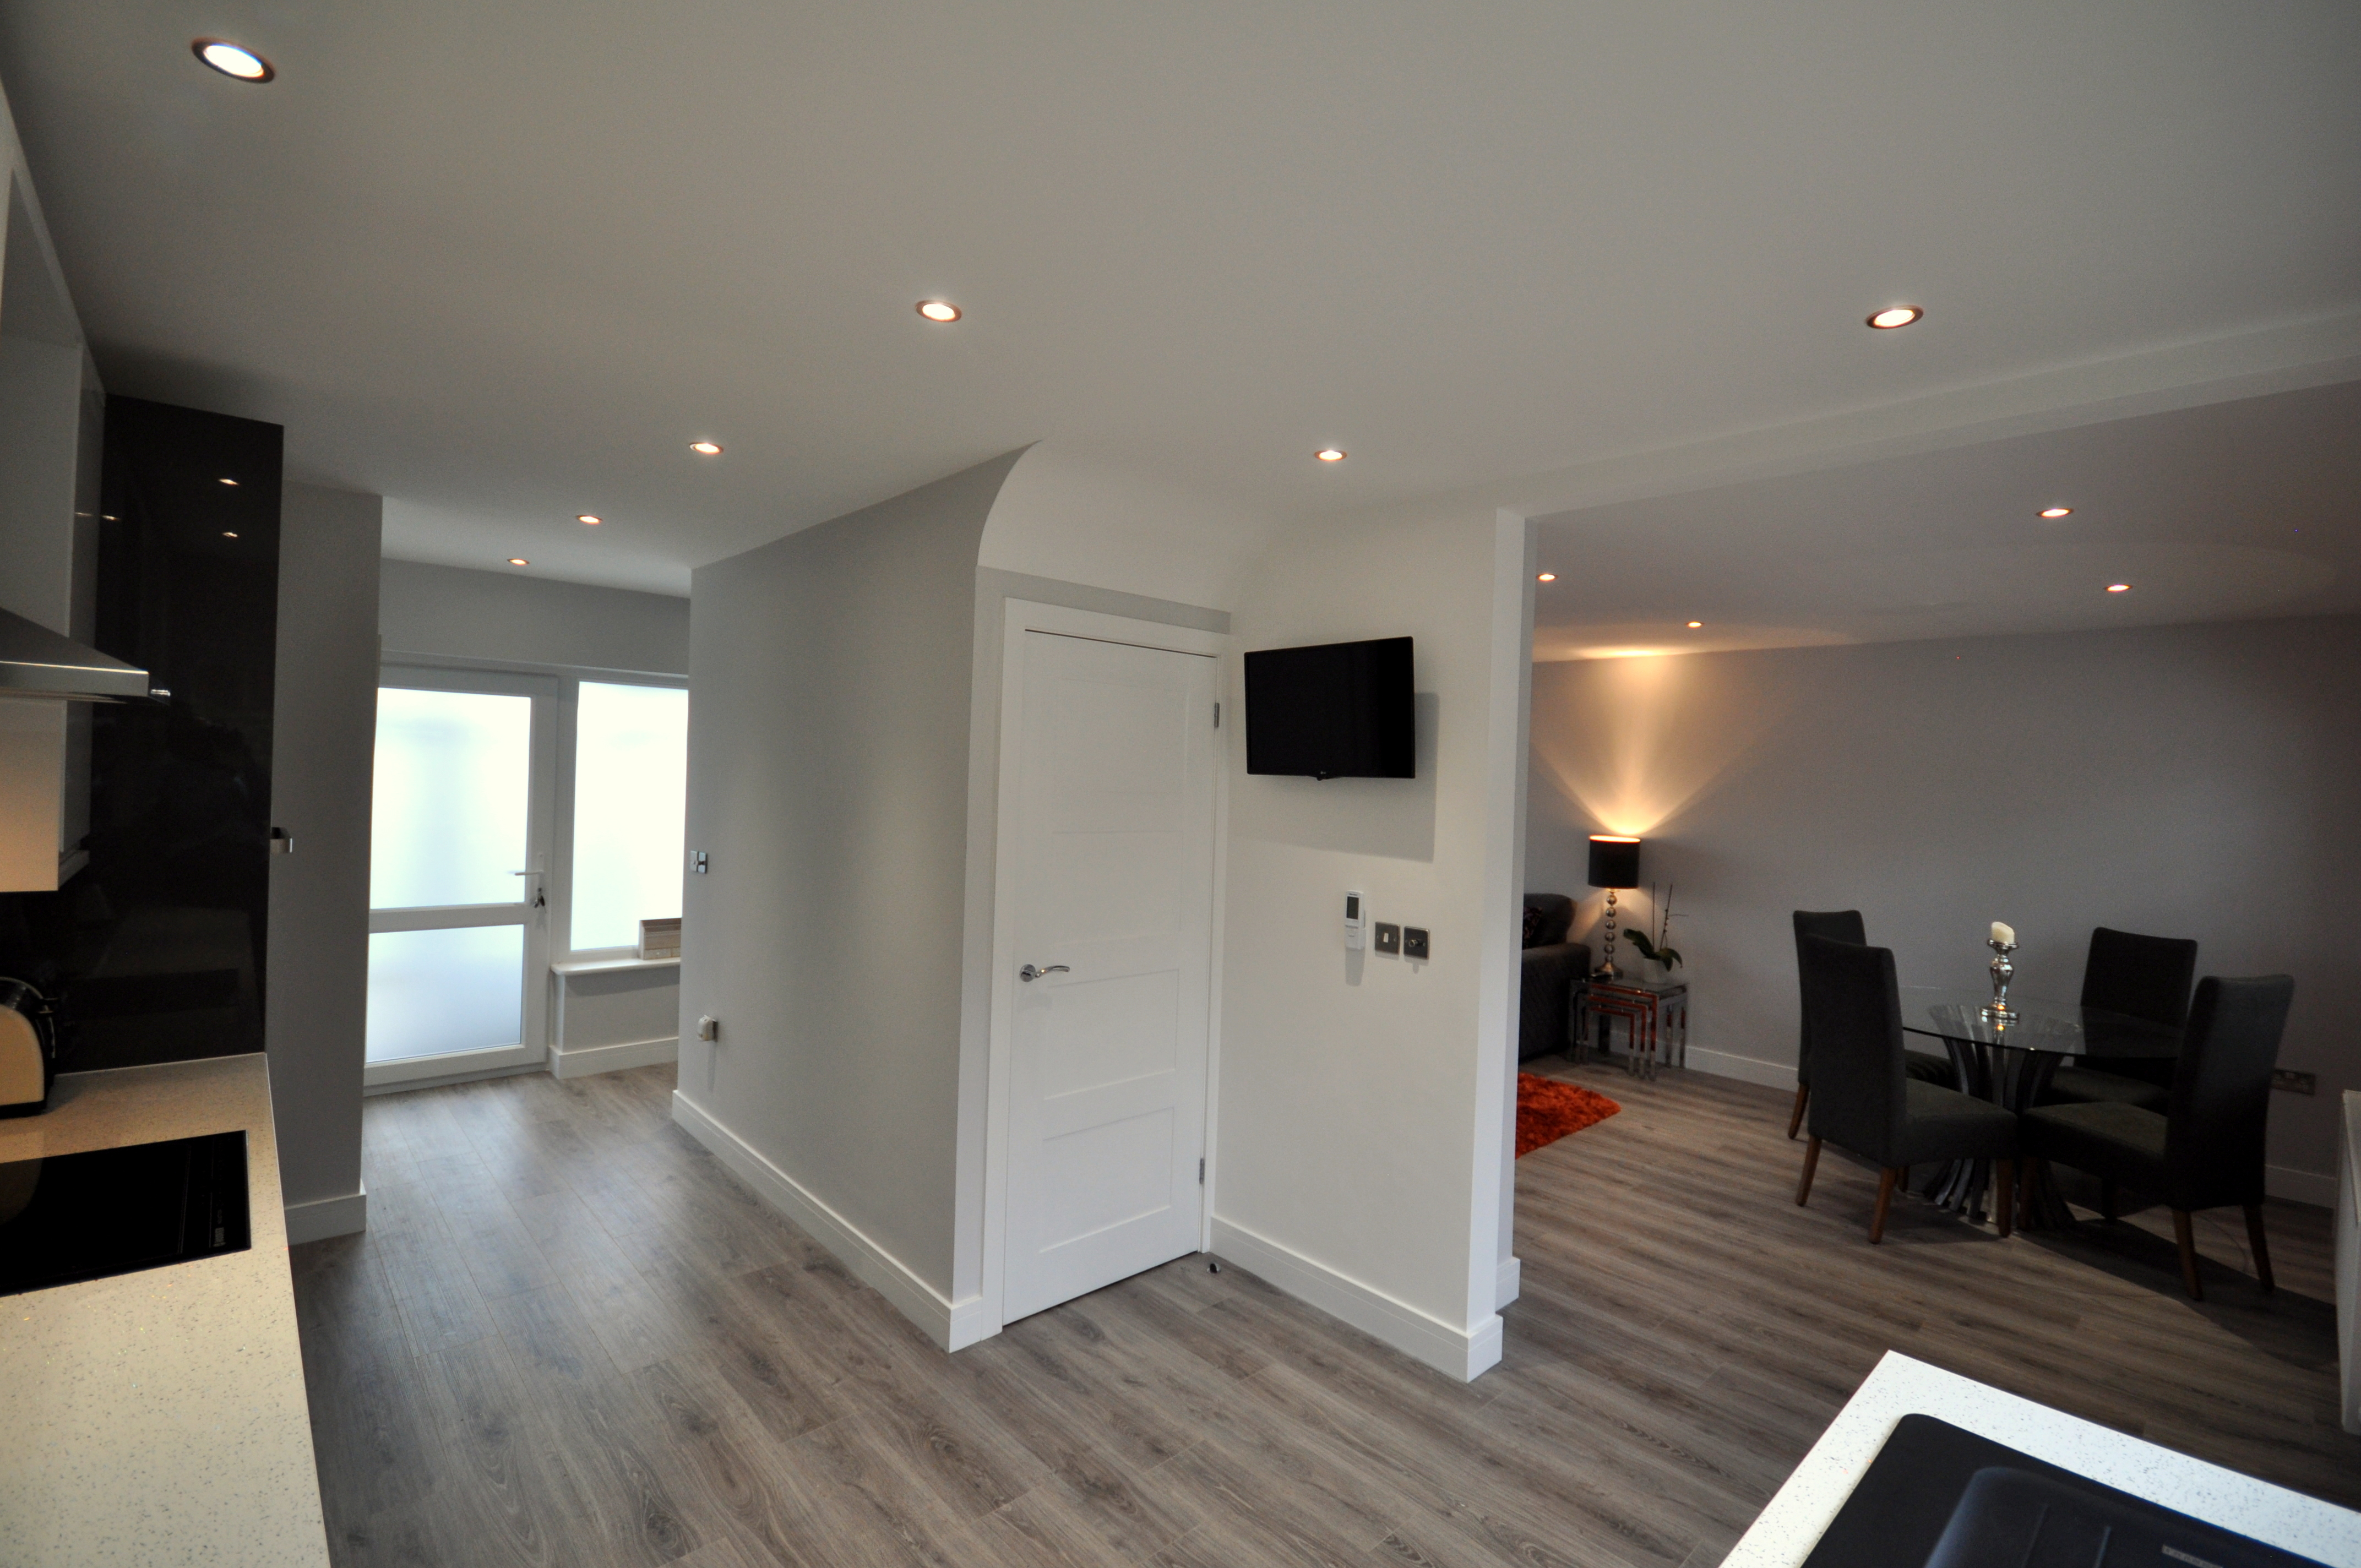 Plastering Walls and Ceiling of Open Plan Living Room in Bournemouth